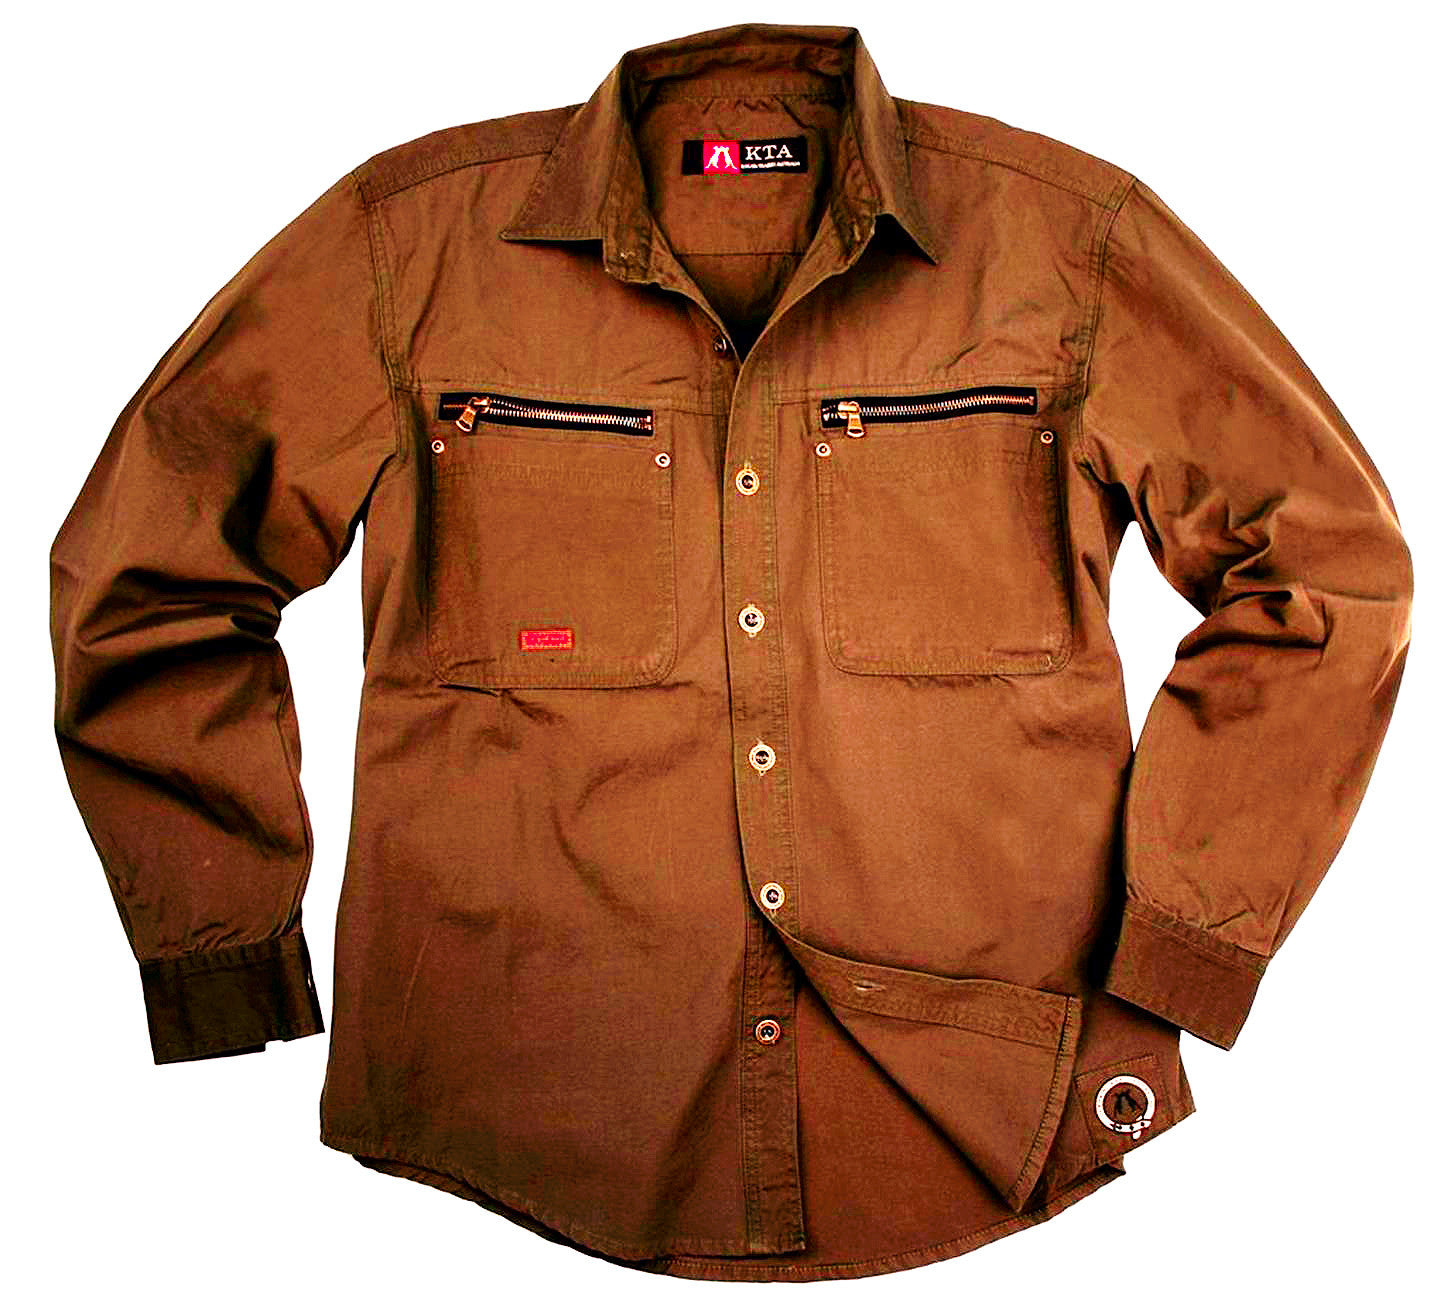 Outdoor | Worker Shirt | Shofield men's shirt with zip pockets - OUT OF AUSTRALIA | Kakadu Traders Australia